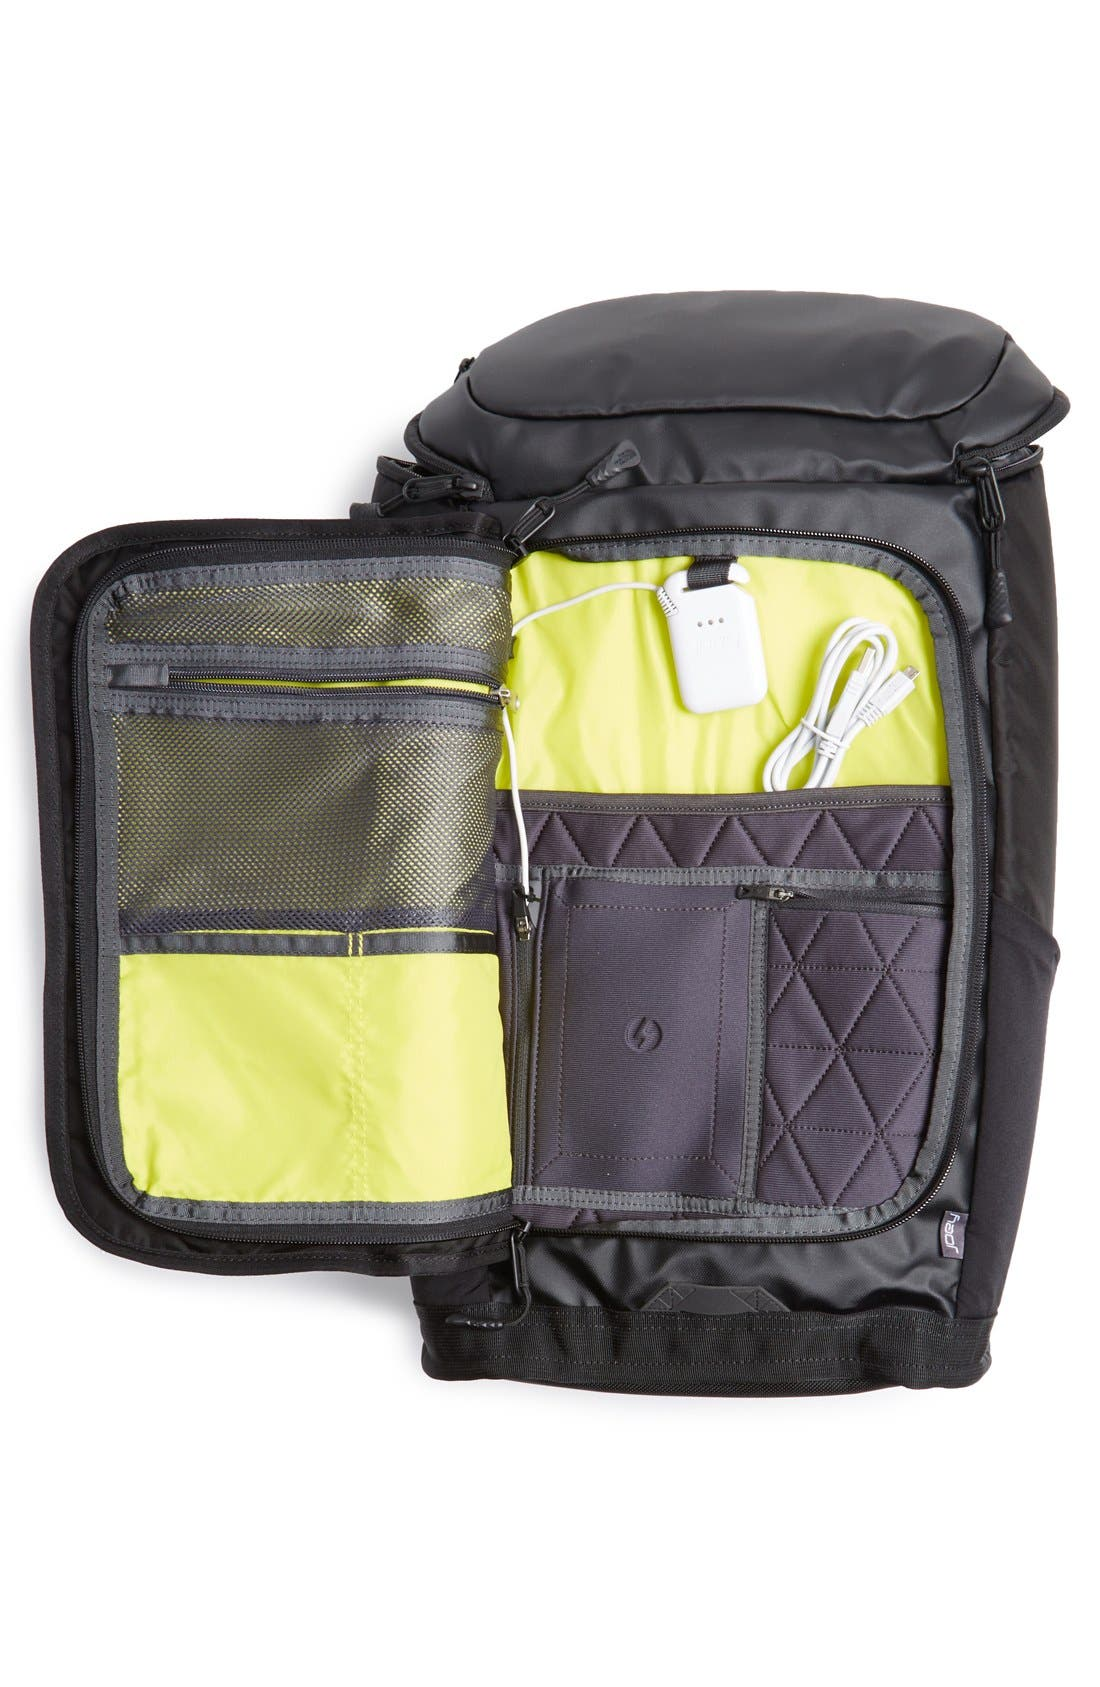 _11108845?crop=pad&pad_color=FFF&format=jpeg&trim=color&trimcolor=FFF&w=860&h=924 the north face 'fuse box charged' backpack nordstrom north face fuse box backpack at alyssarenee.co